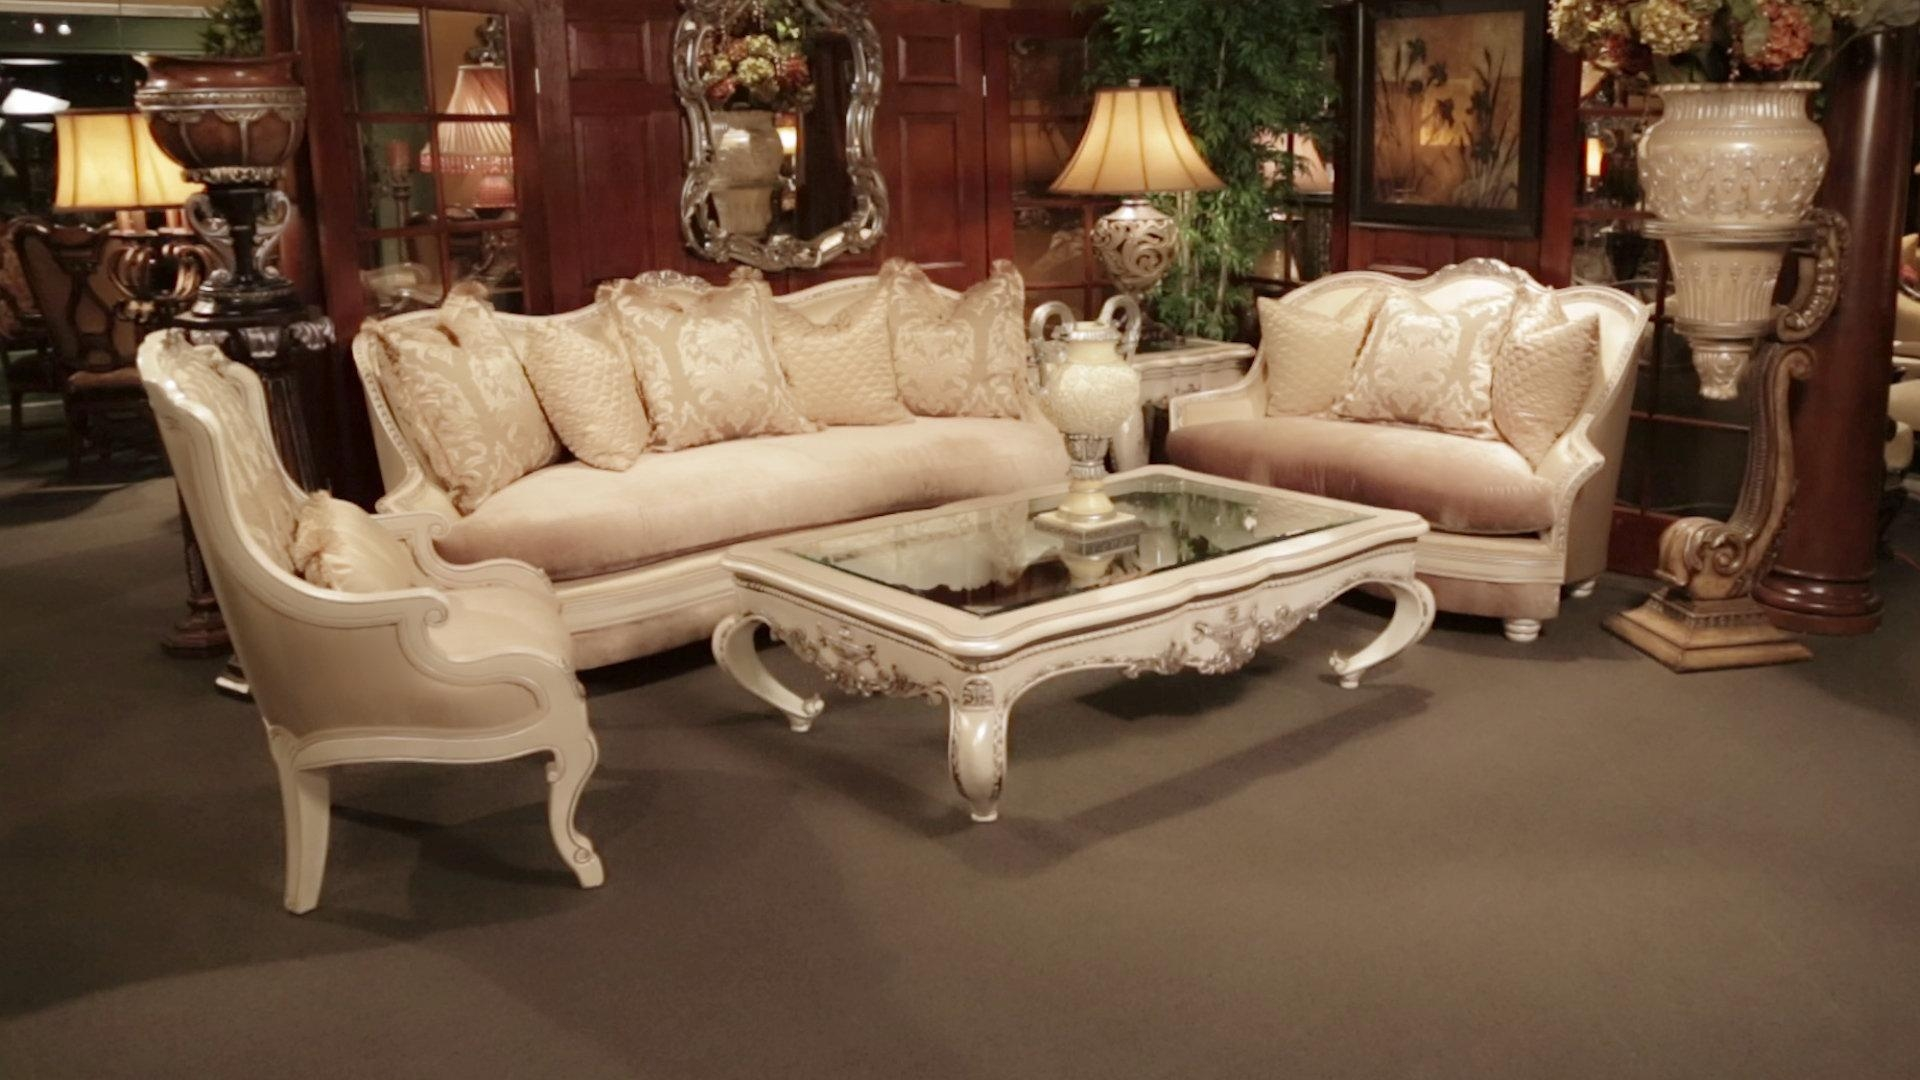 Living Room Furniture | Living Room Sets | Sofas | Couches With Cleopatra Sofas (Image 16 of 20)